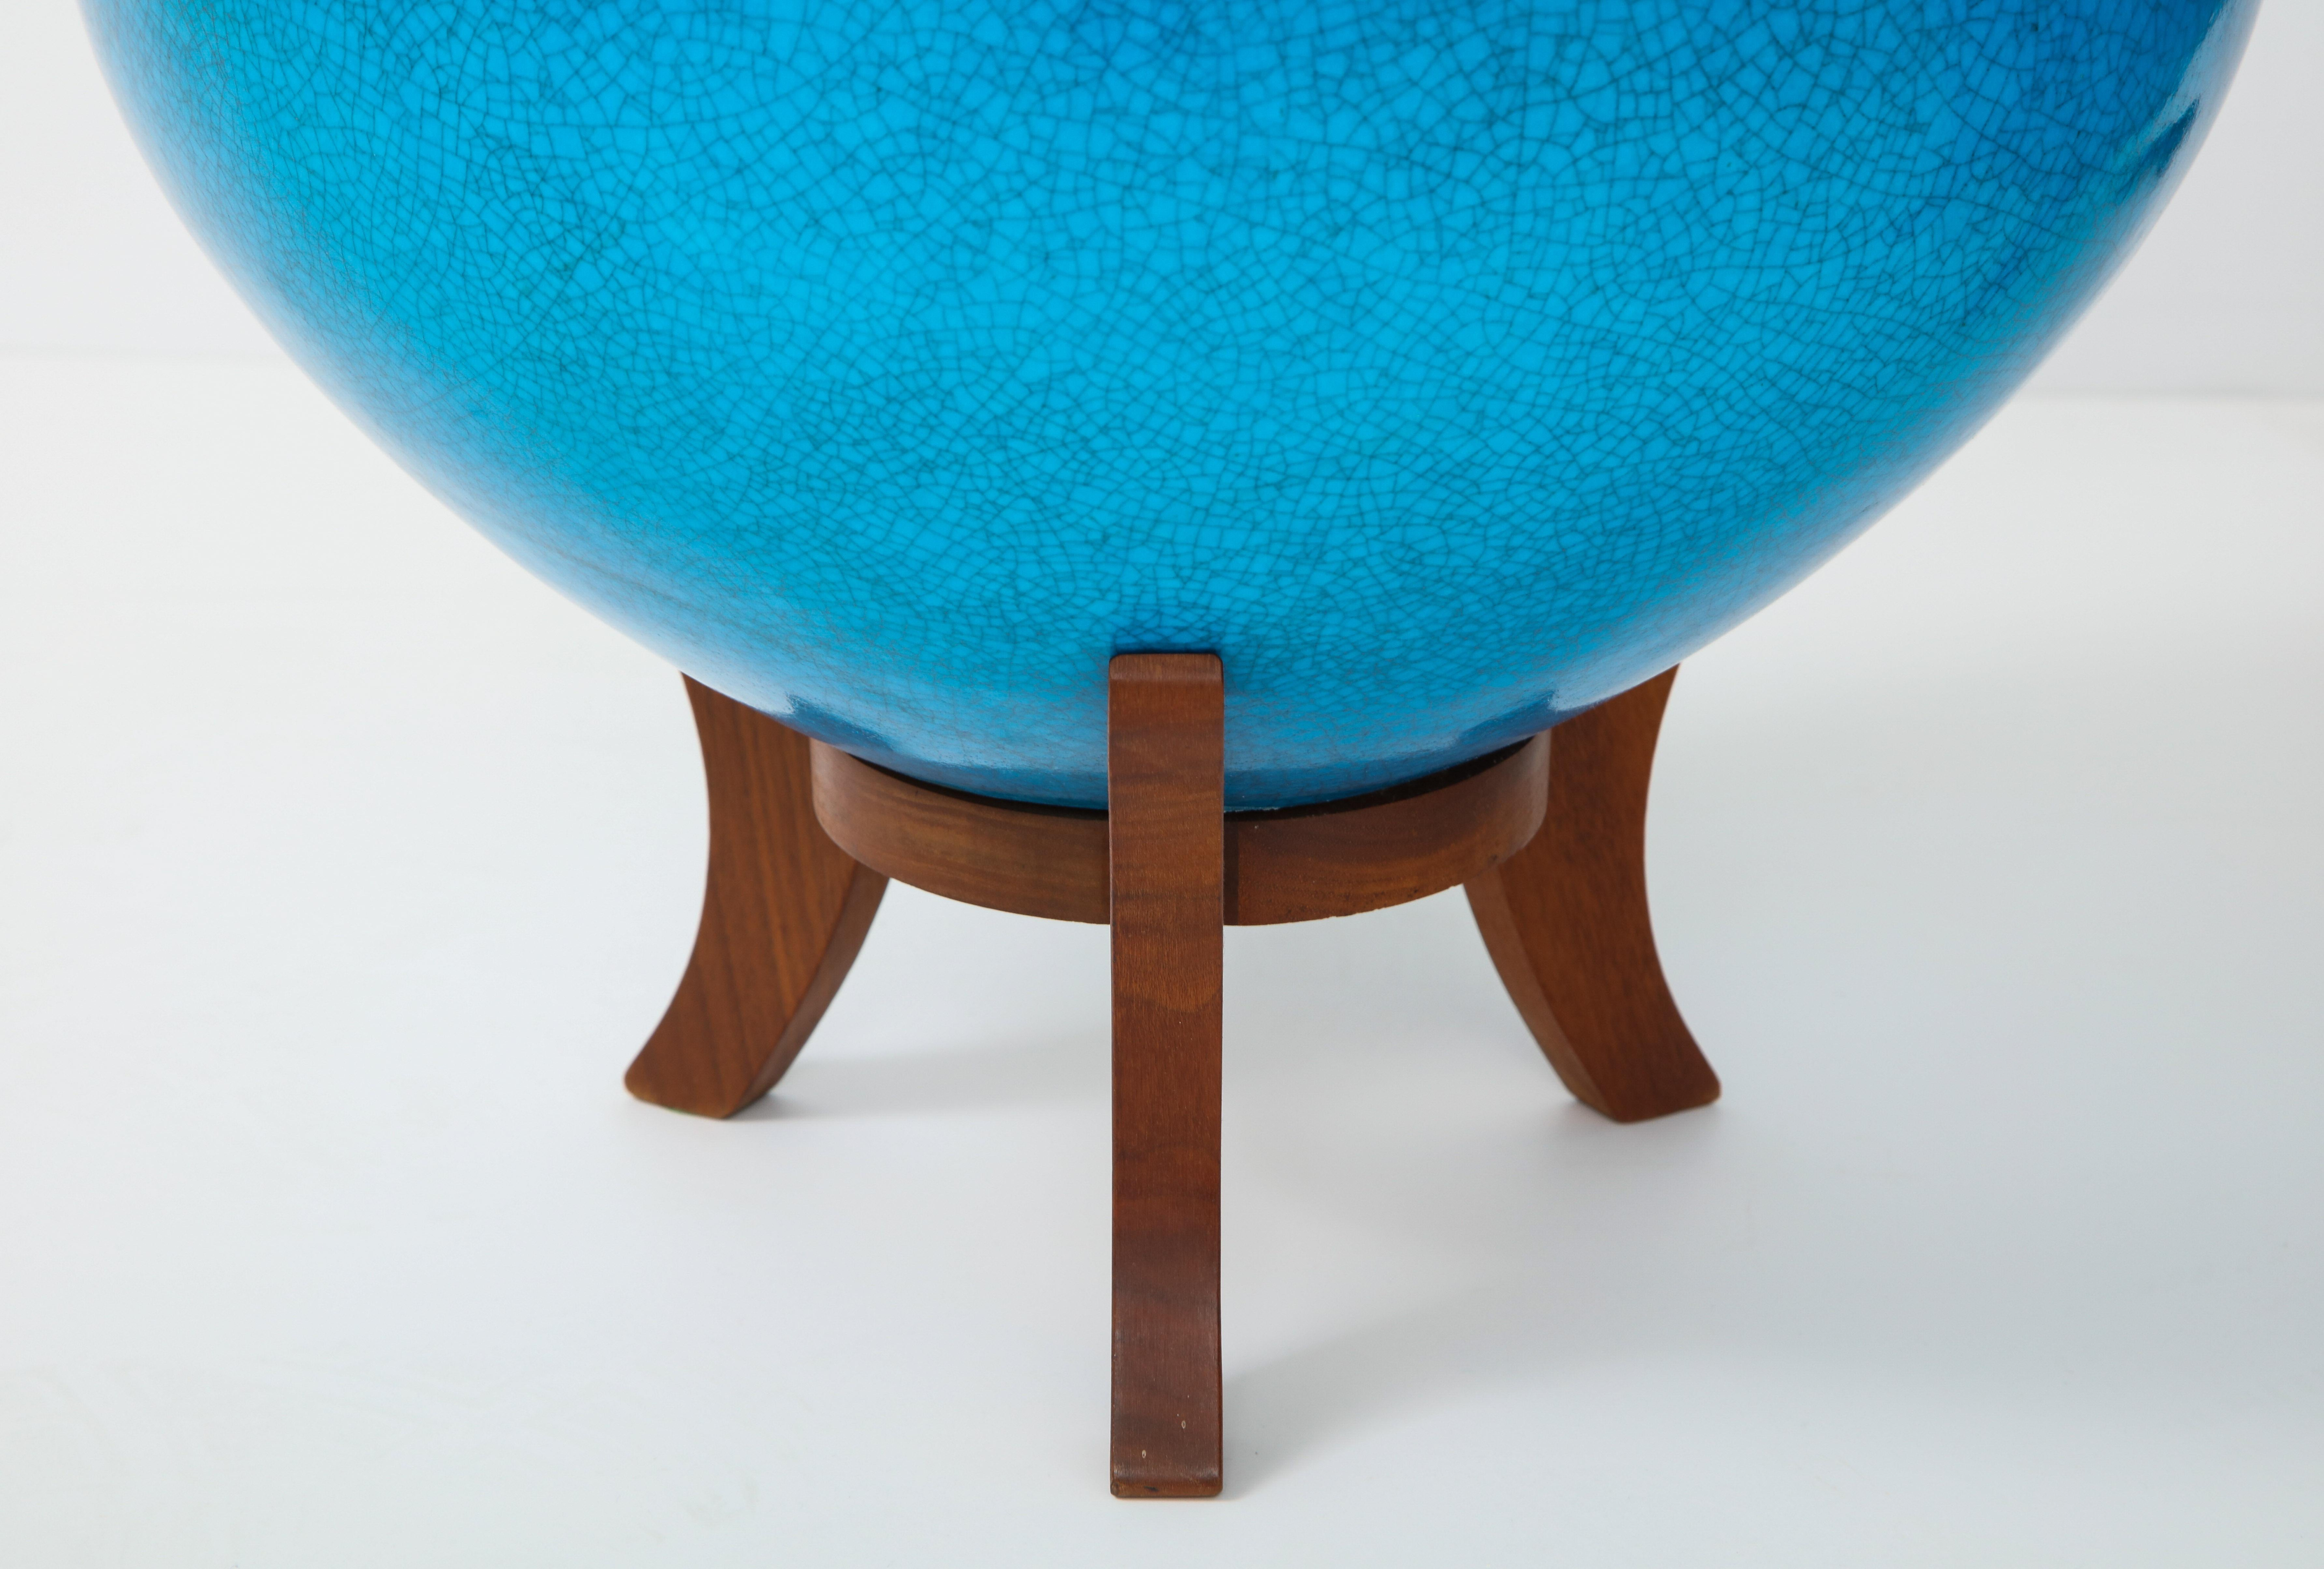 Enjoyable Fabulous Pair Of Mid Century Lamps With A Cerulean Blue Glazed Finish Gmtry Best Dining Table And Chair Ideas Images Gmtryco